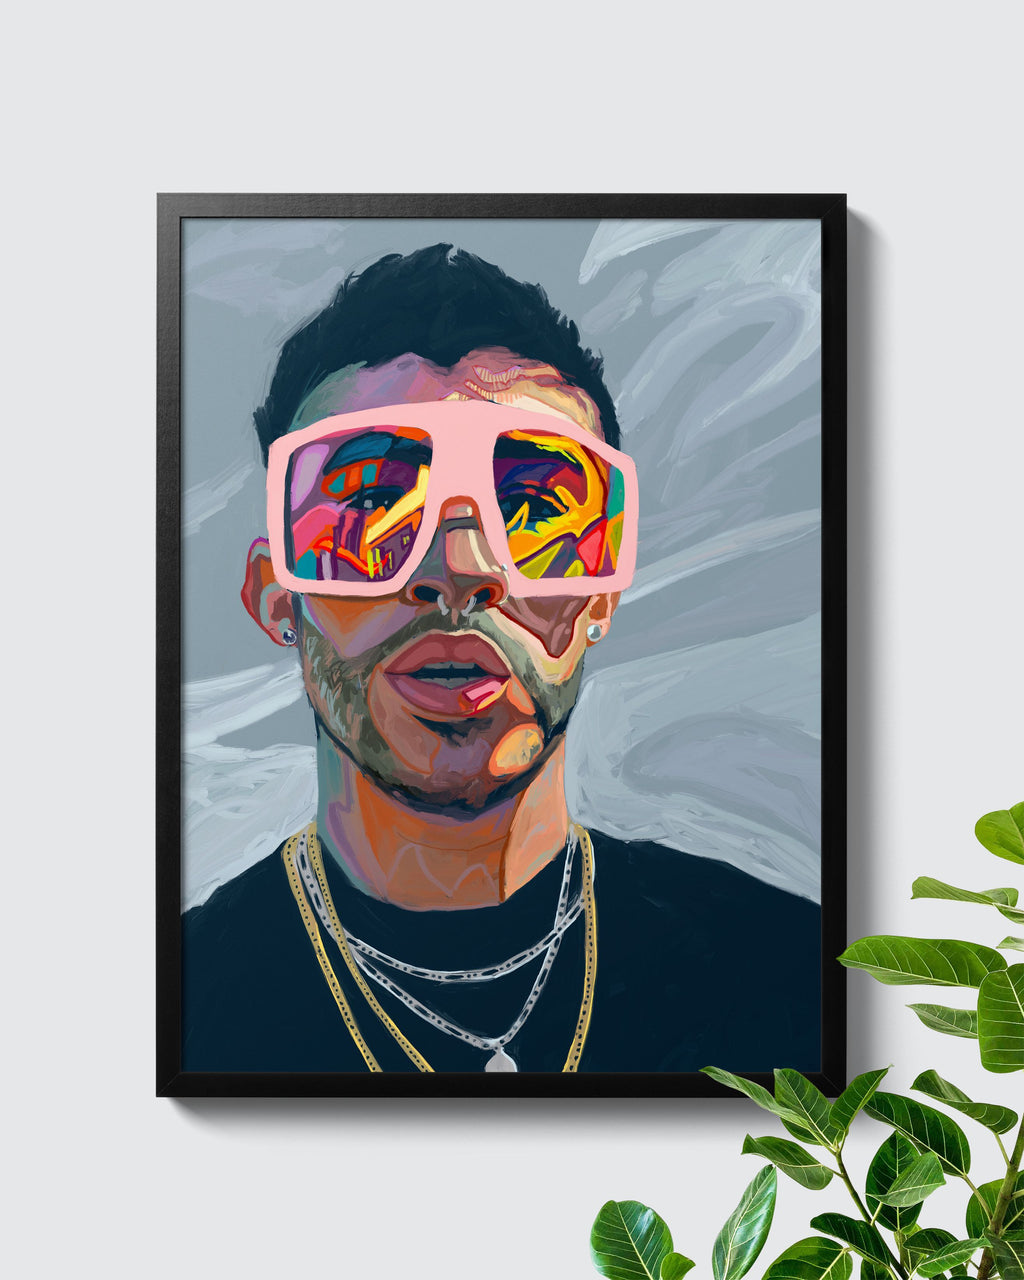 Colourful Bad Bunny YHLQMDLG Poster - Nashid Chroma